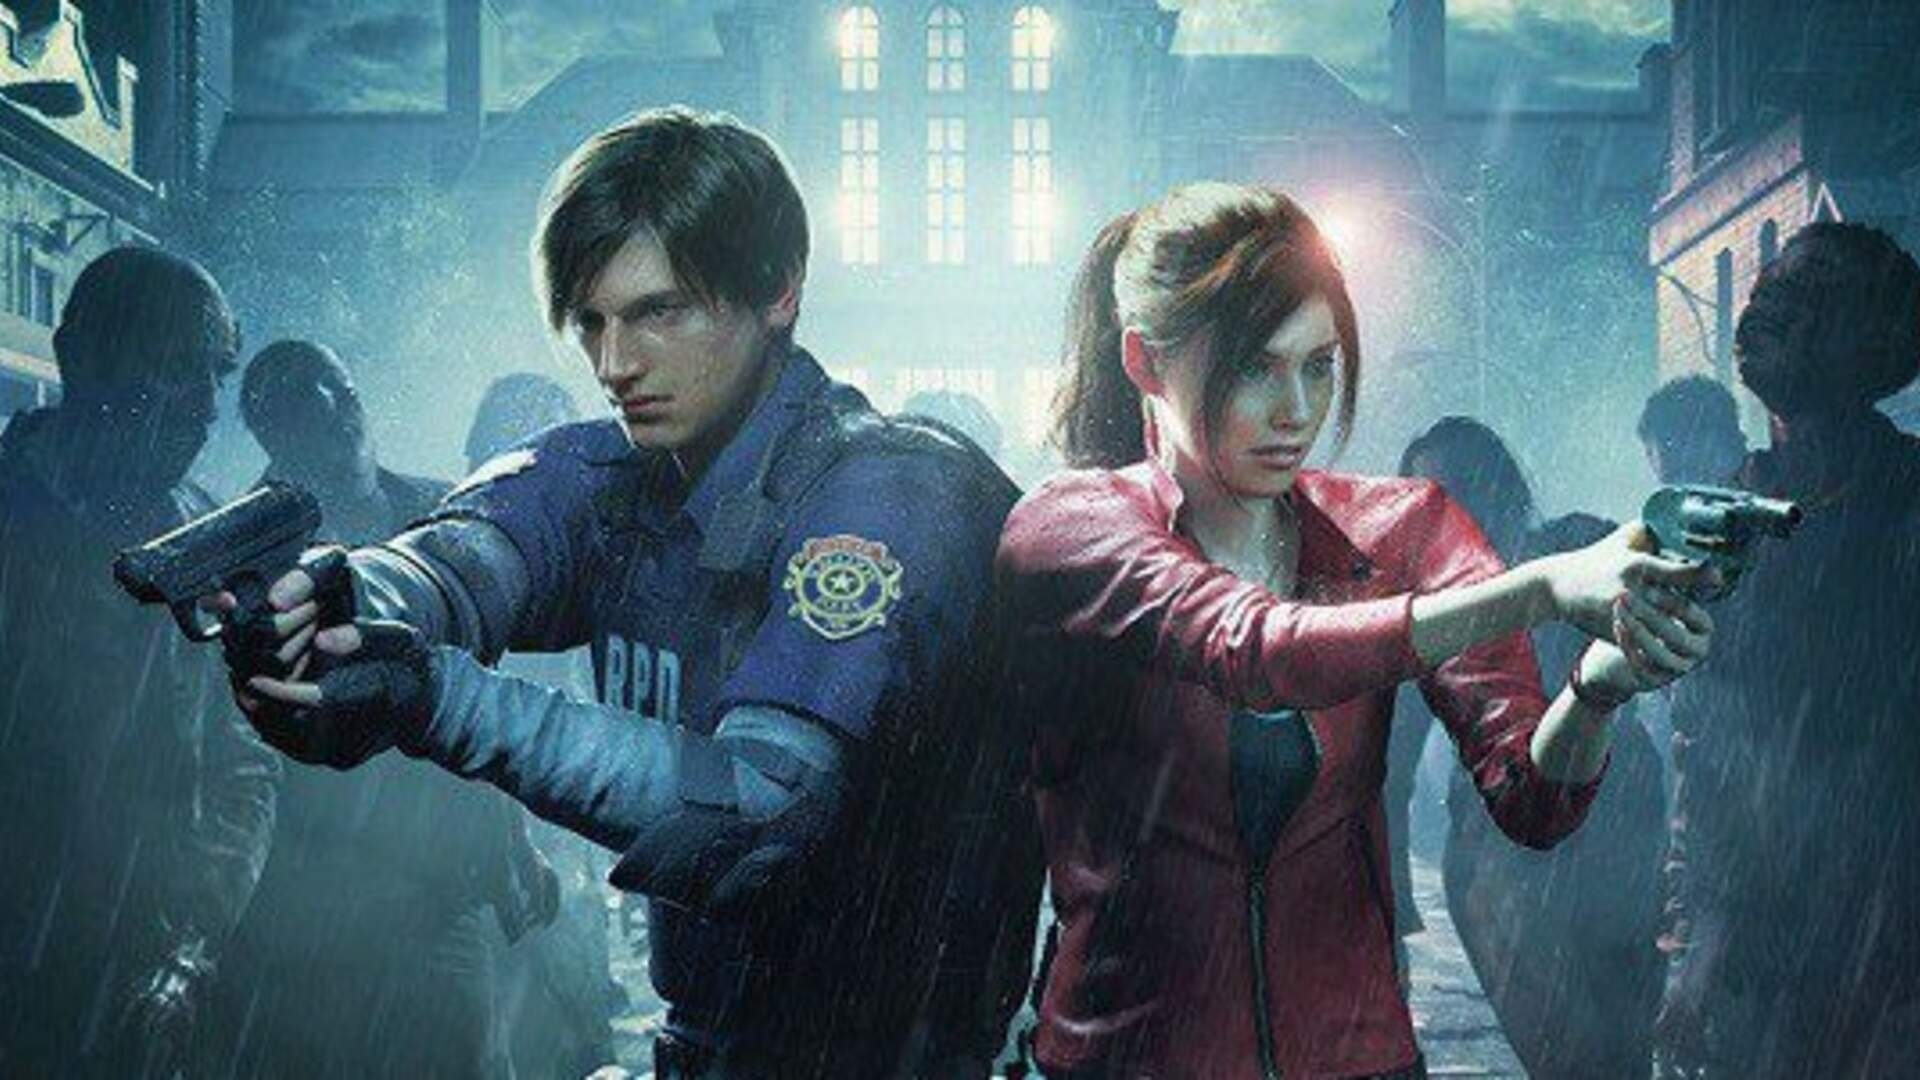 Resident Evil 2 Walkthrough - Complete Guides for Leon and Claire's Campaigns